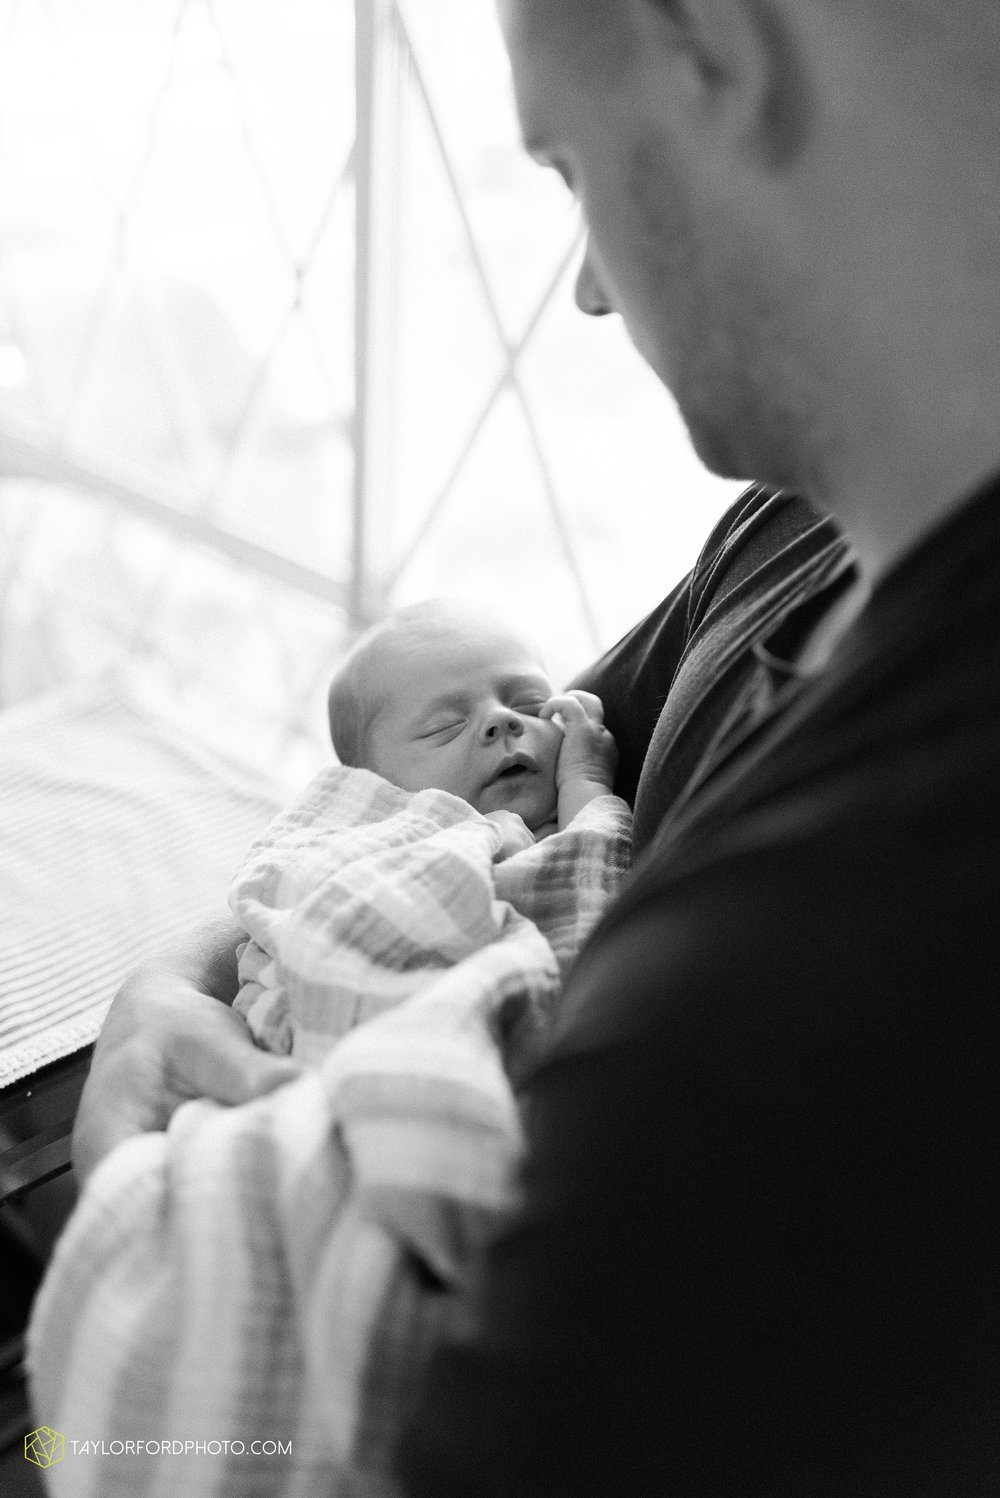 indoor-at-home-nursery-marshall-michigan-family-newborn-photographer-taylor-ford-photography_9982.jpg